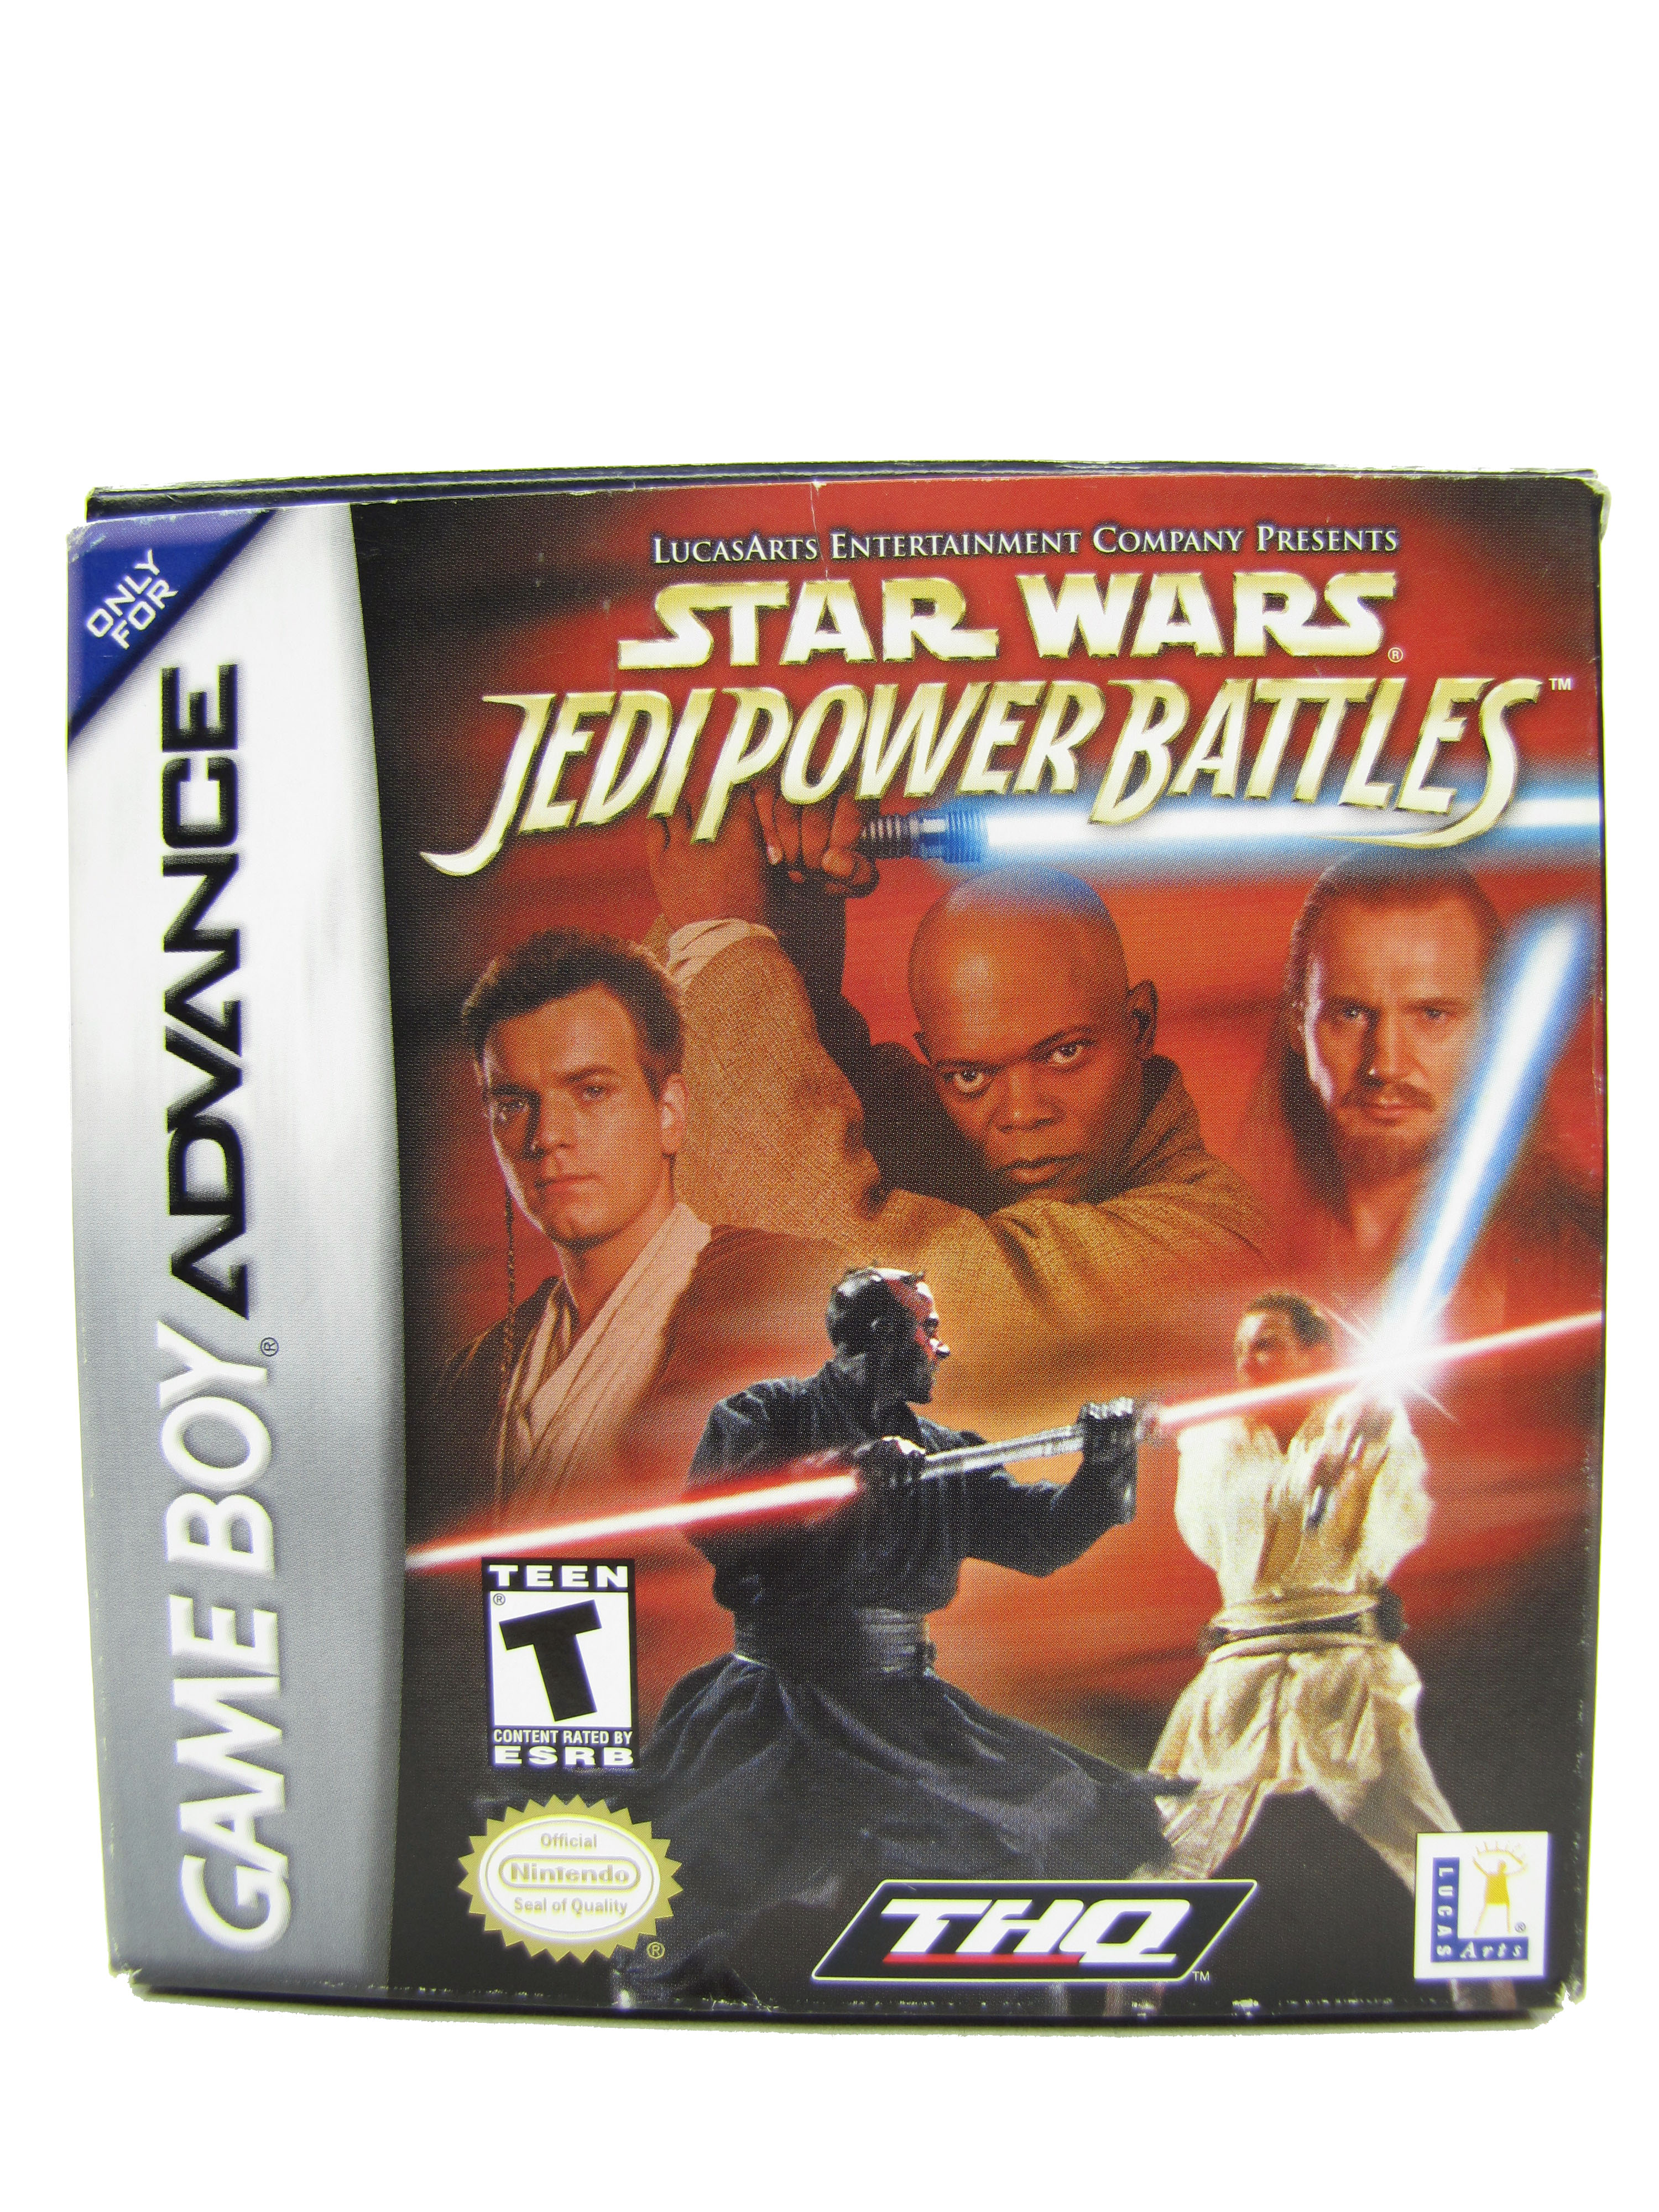 Game Boy Advance Star Wars: Jedi Power Battles Complete - 2001